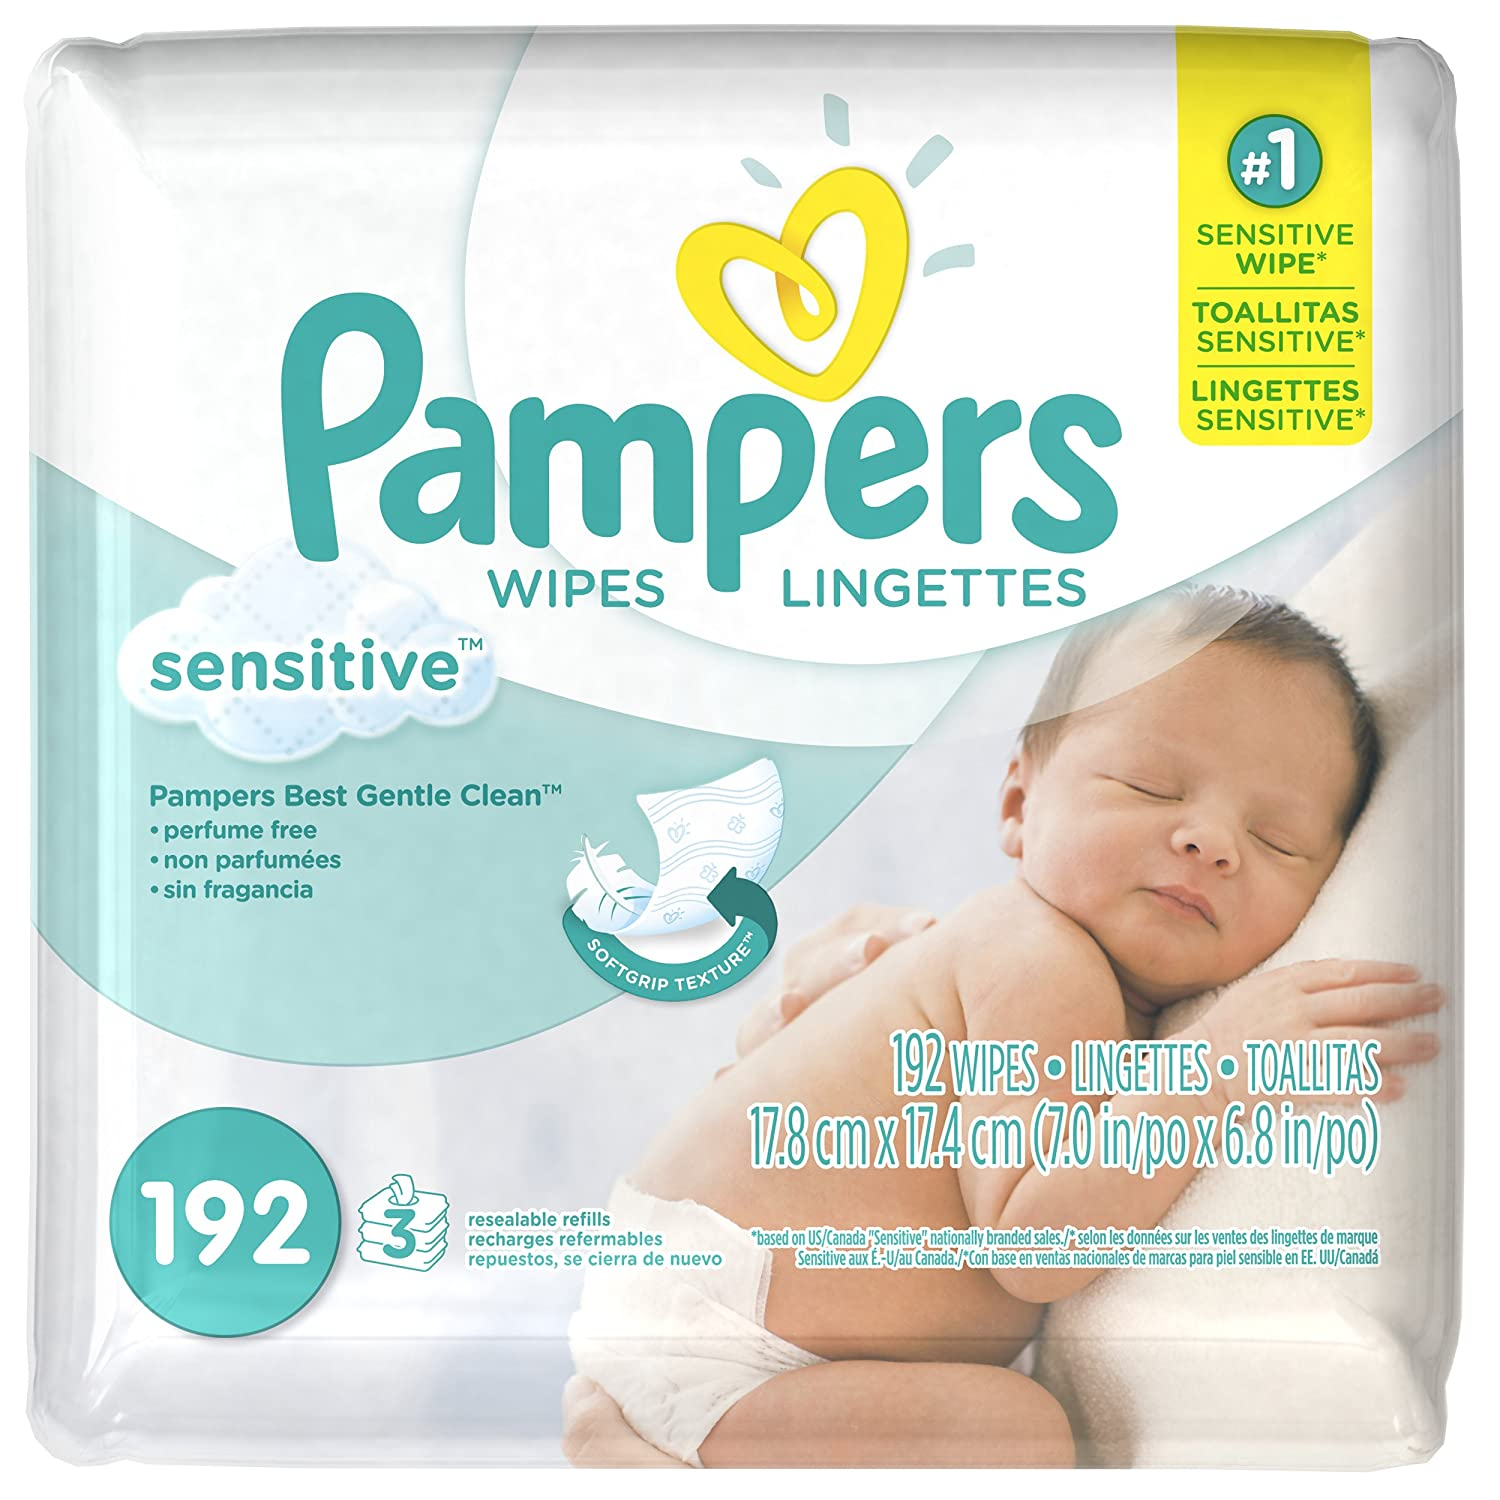 Pampers Baby Wipes, SENSITIVE, 3X Refill Packs, 192 Count PG-189